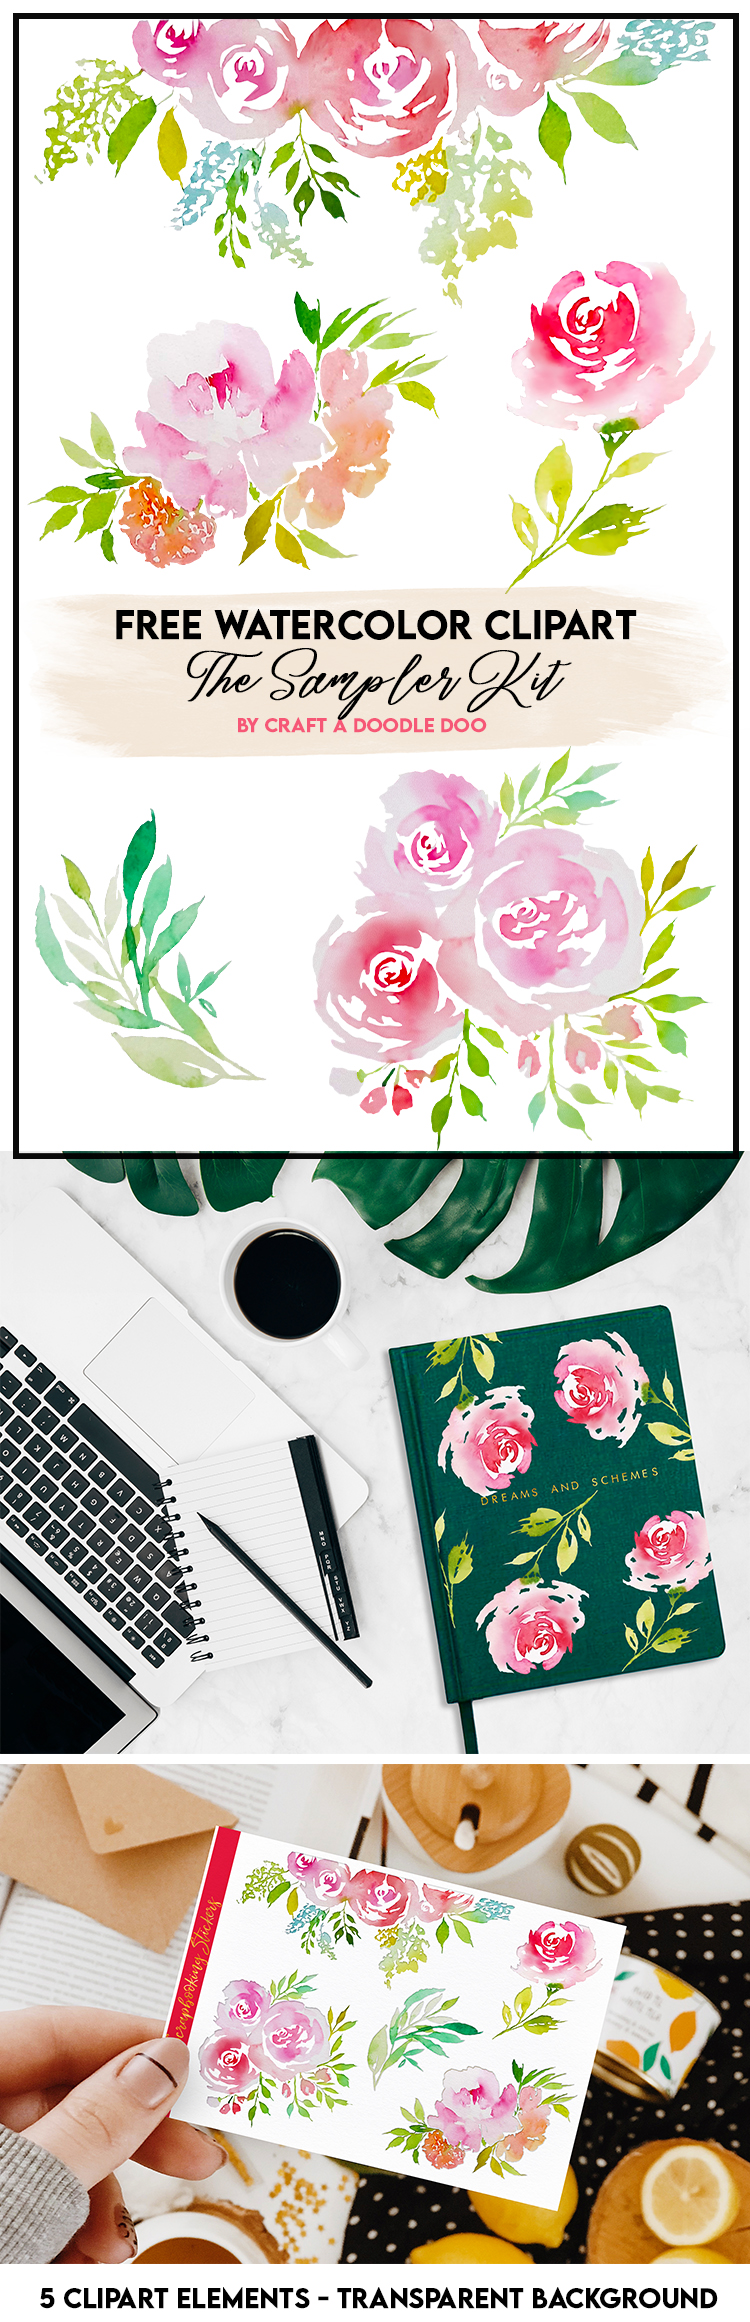 http://onceuponherdream.blogspot.com/2020/07/watercolor-botanical-and-floral.html